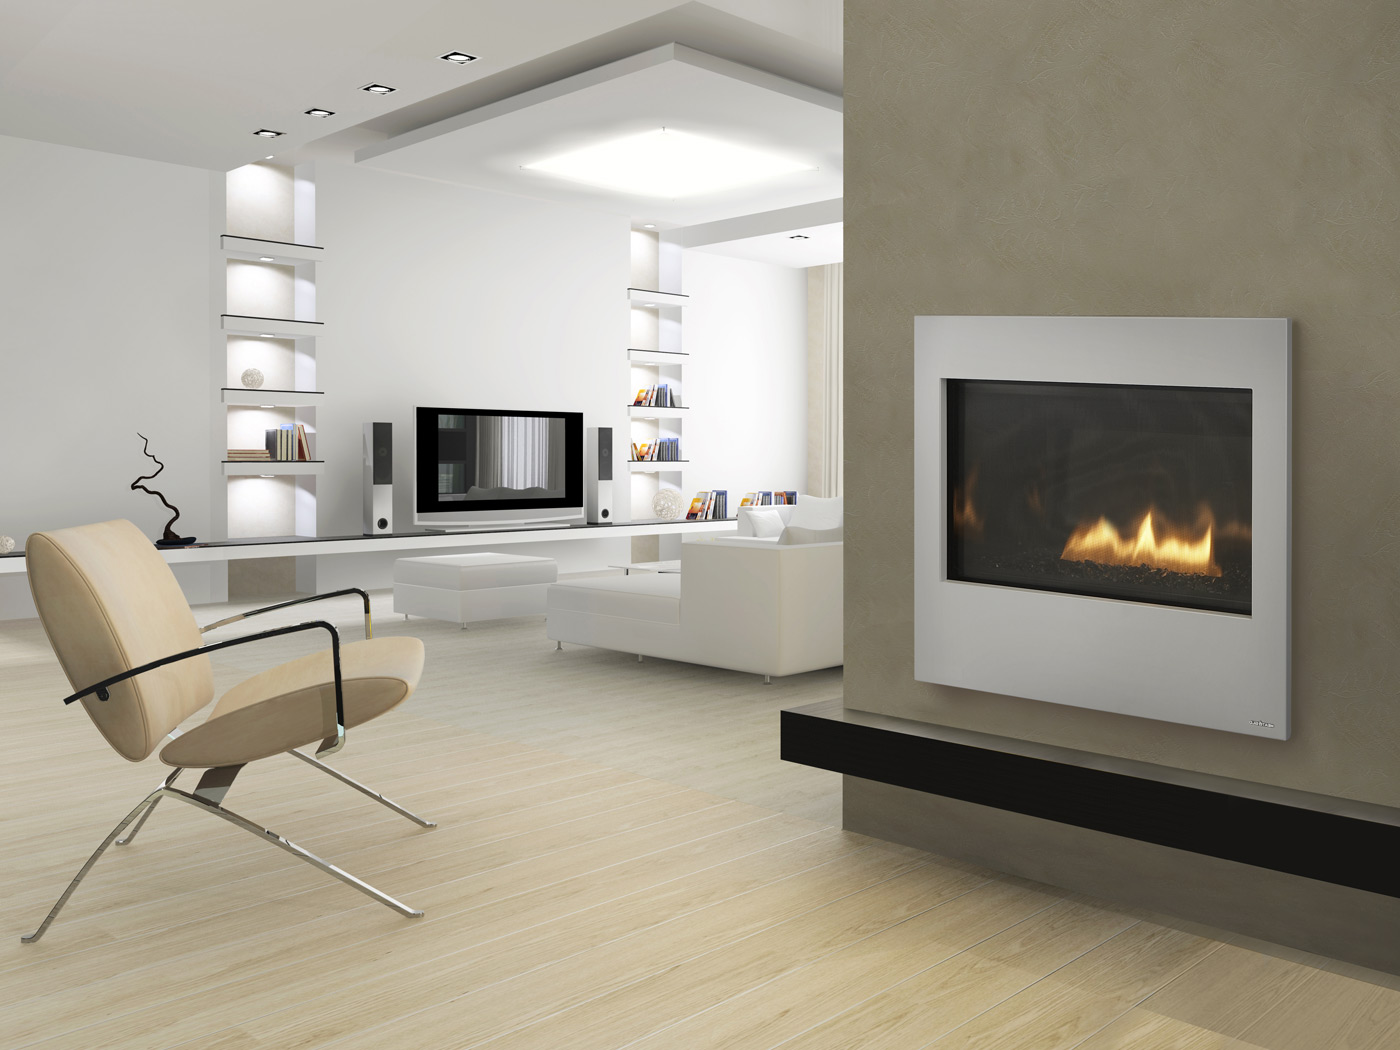 Fireplaces Gas Fireplace Luxury Lifestyle Design Interiors Inside Ideas Interiors design about Everything [magnanprojects.com]